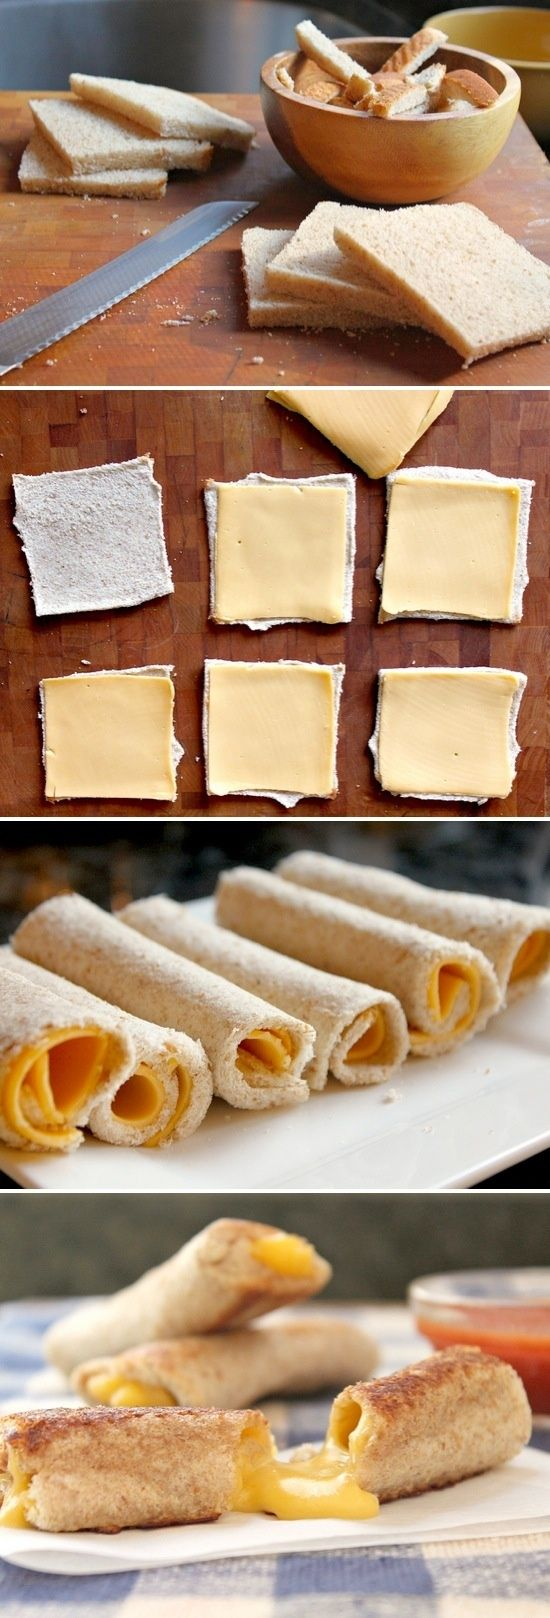 Grilled Cheese Rolls—it would be perfect for dipping in tomato soup!